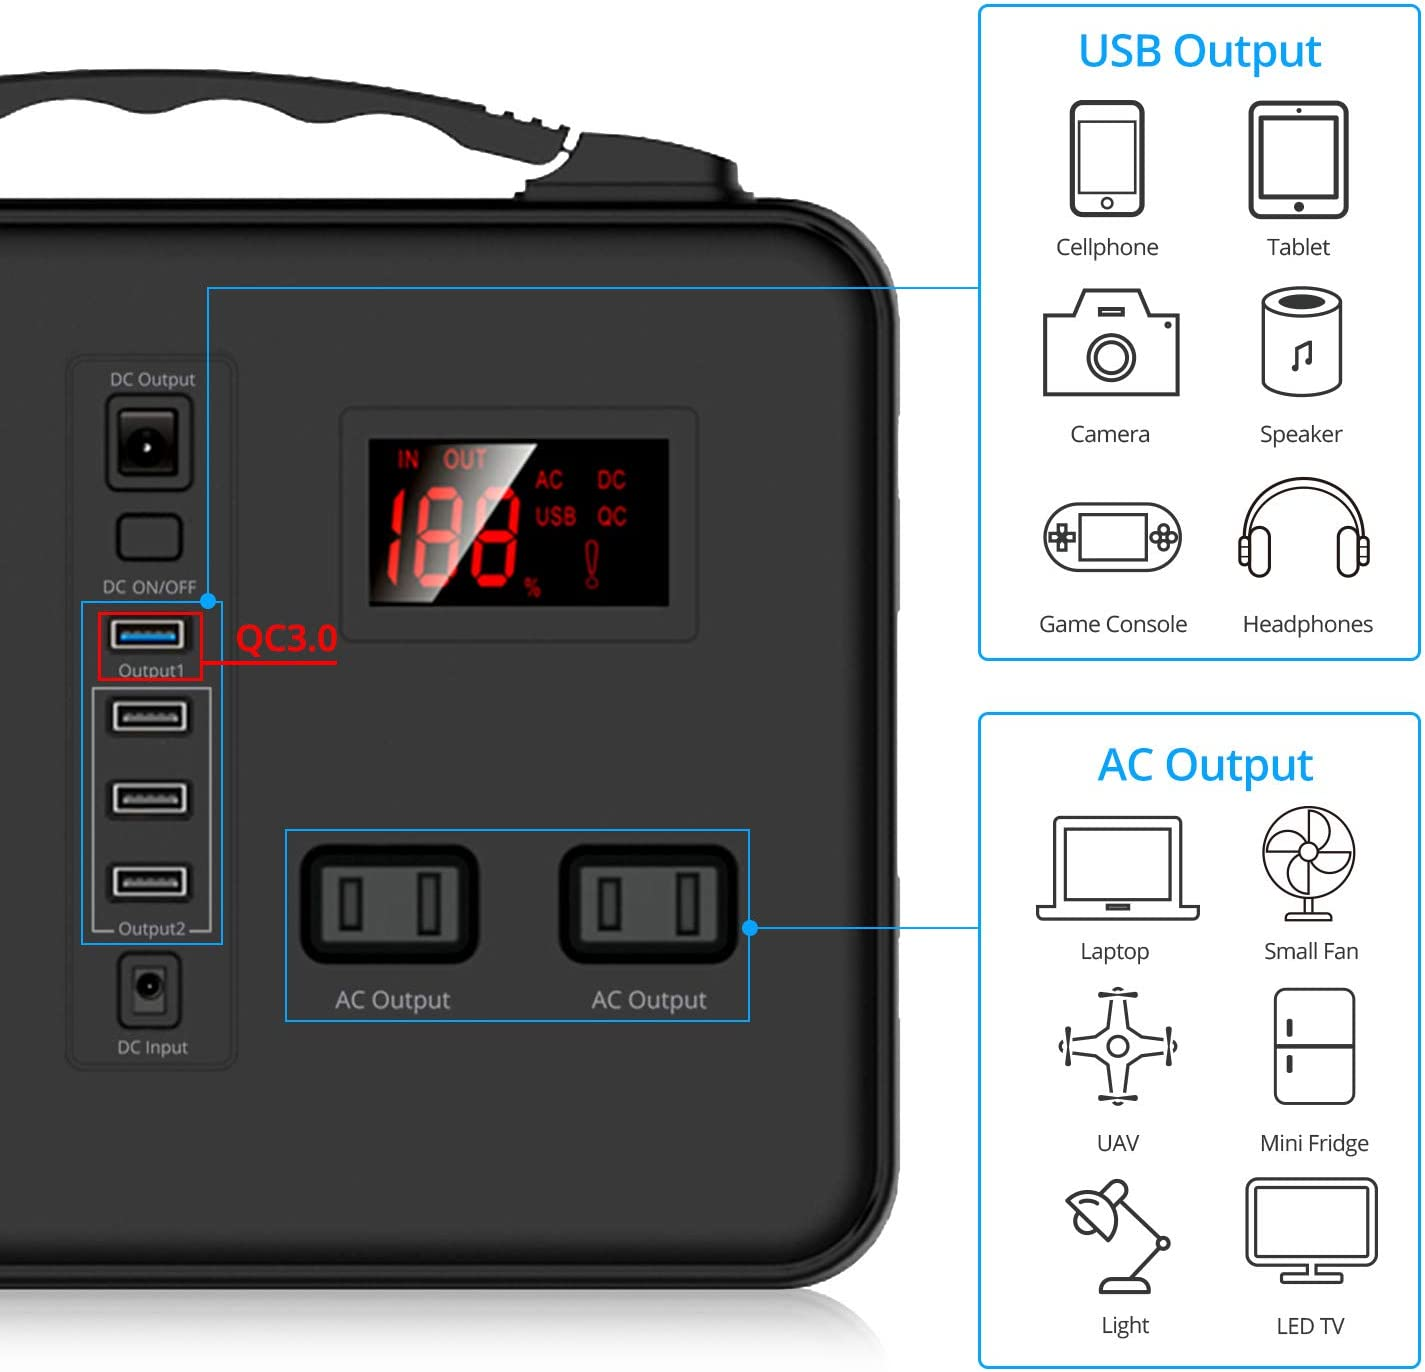 IDEAPLAY Portable Power Station Generator 150Wh, Rechargeable Emergency Backup Lithium Battery with 110V 200W AC Outlet, 12V DC Output, USB Ports, LED Flashlight, for Home Travel Camping Outdoors